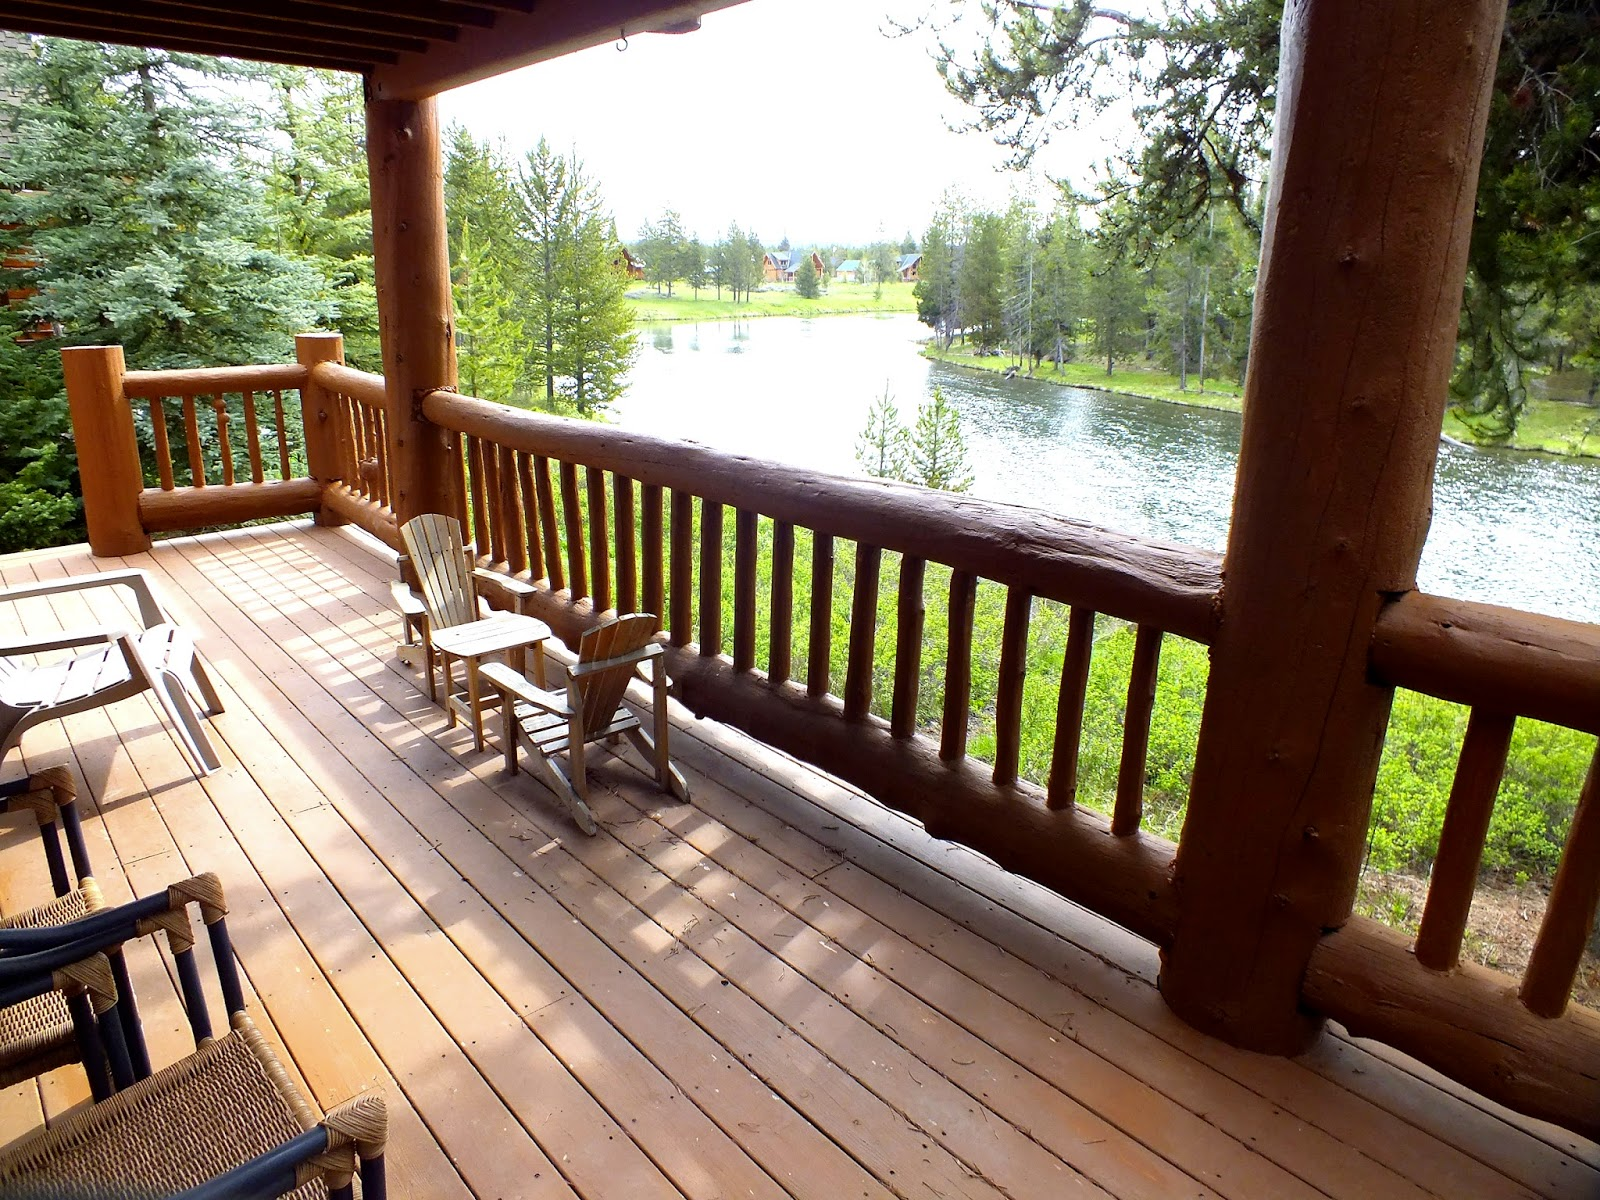 Check Below For More Island Park Cabins Sale Near Yellowstone